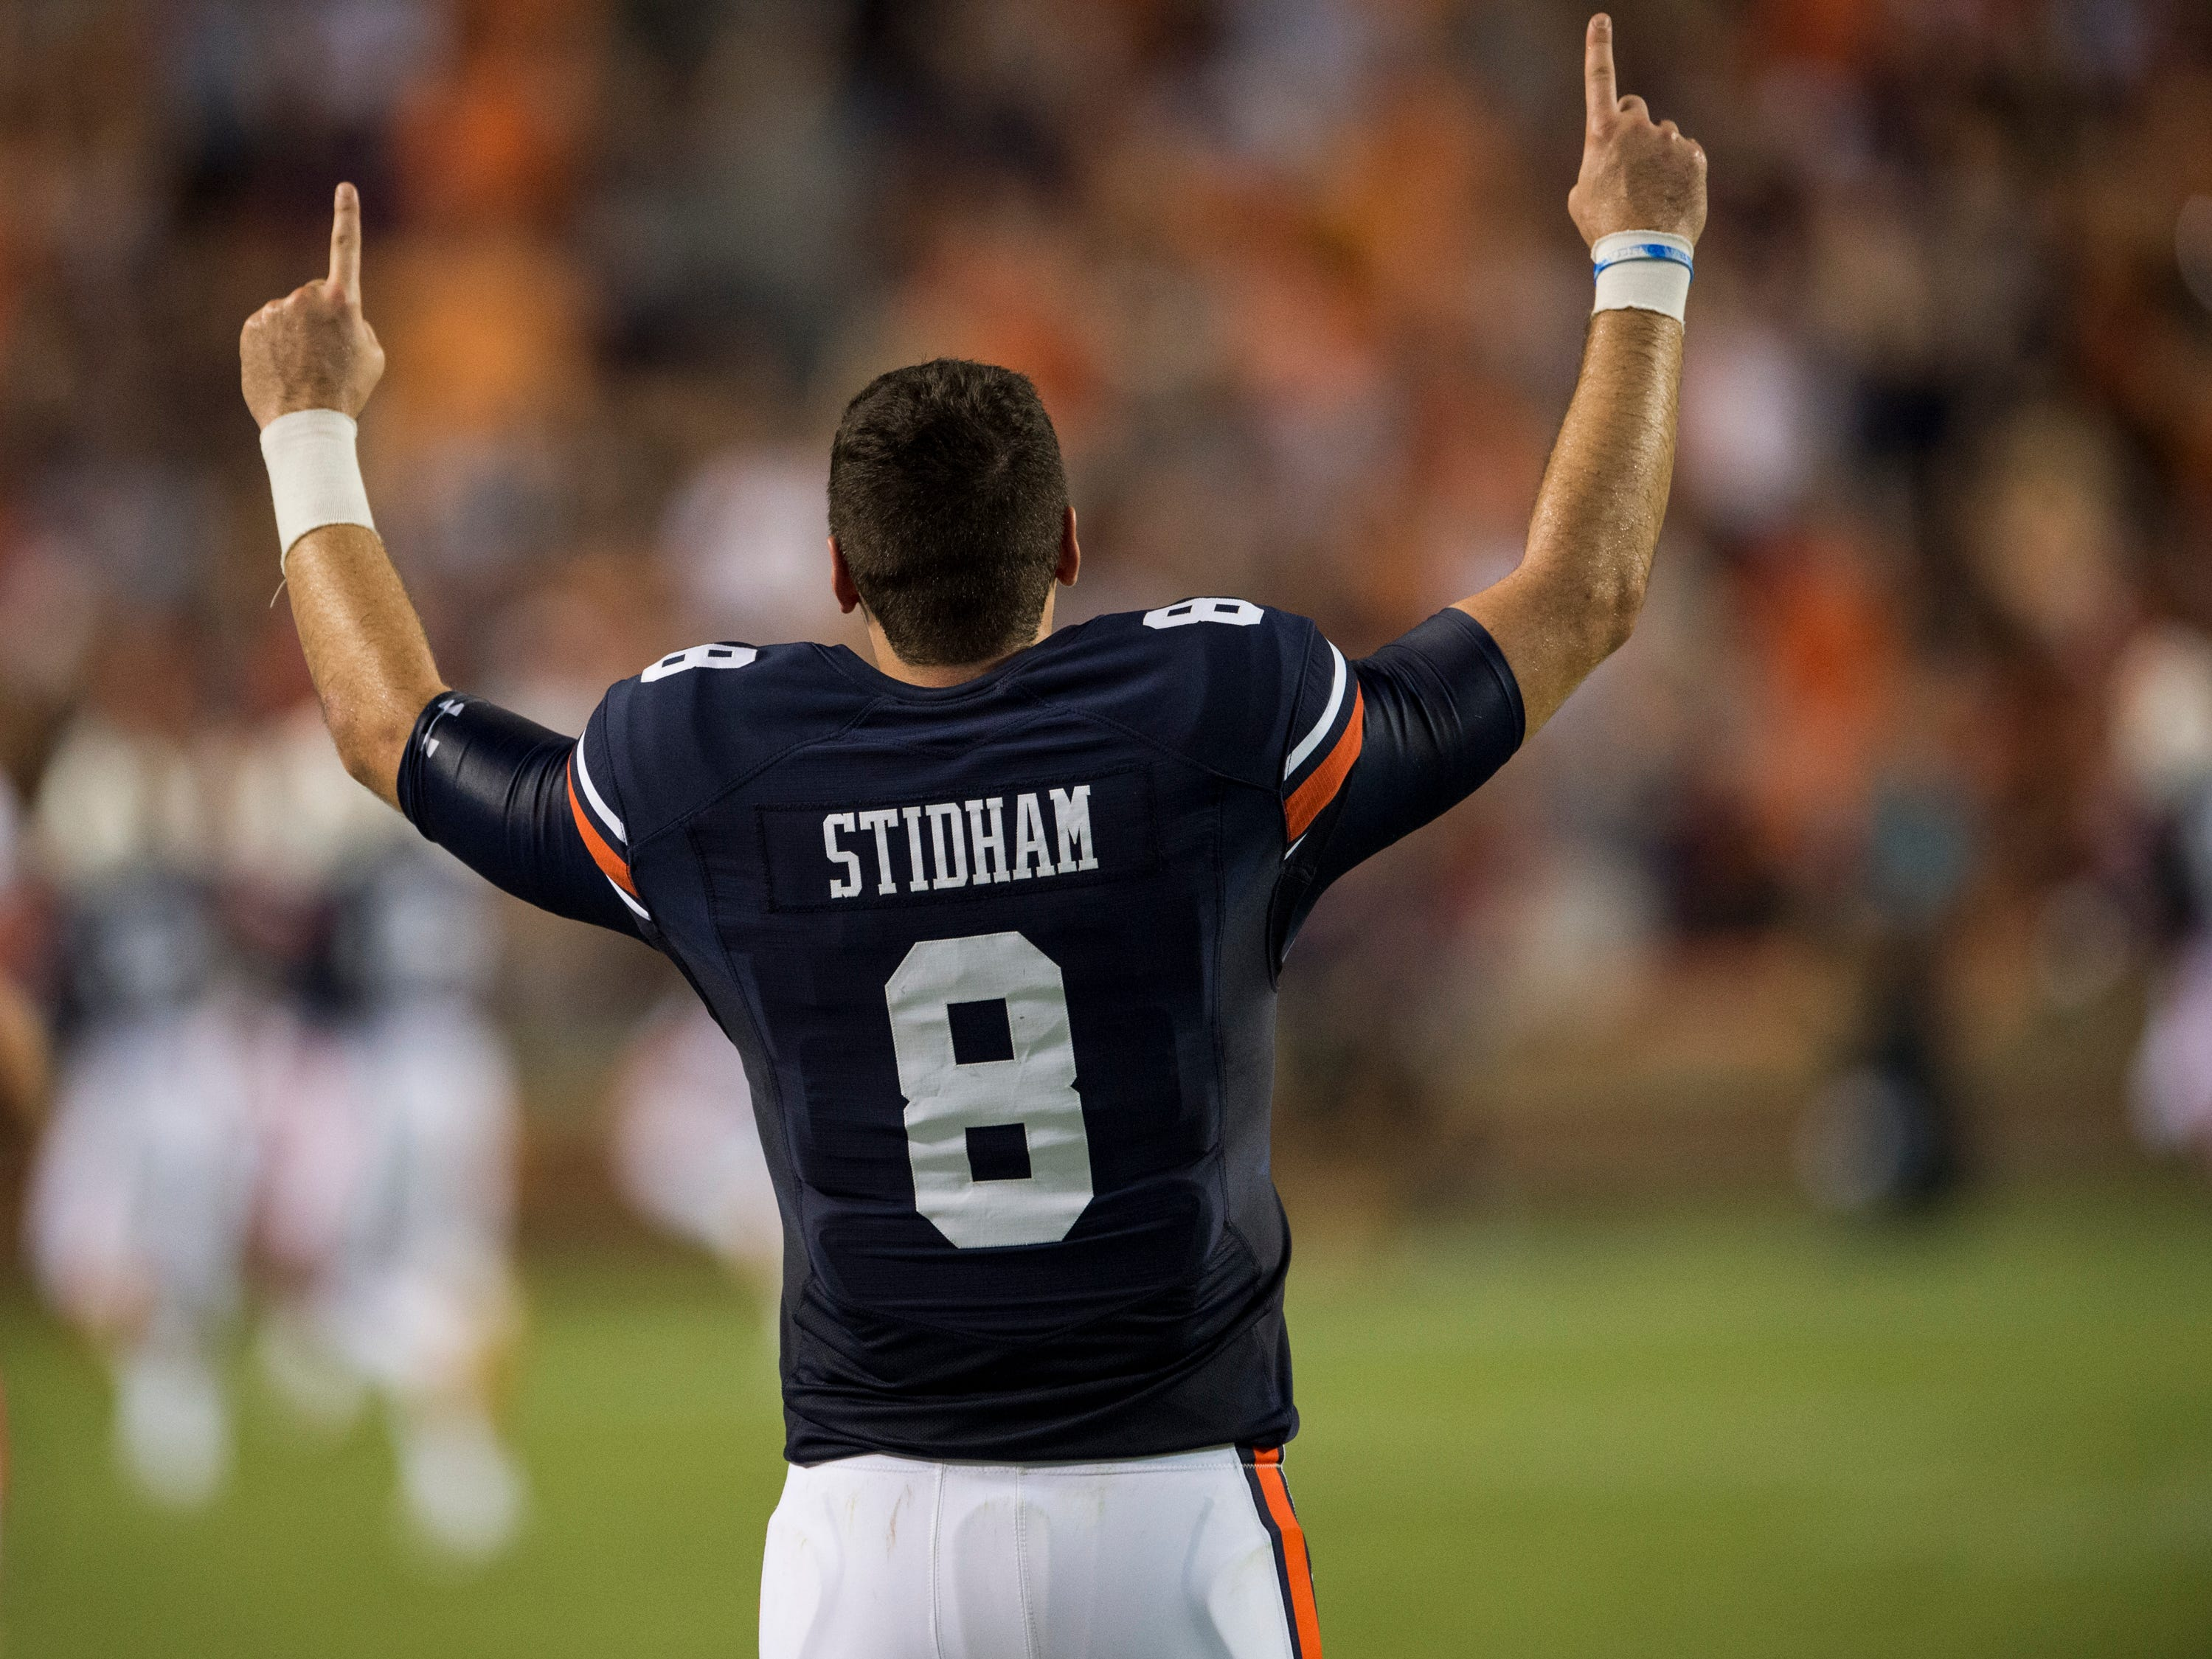 Auburn's Jarrett Stidham (8) celebrates as his defense intercepts the ball and scores a touchdown against Alabama State at Jordan-Hare Stadium in Auburn, Ala., on Saturday, Sept. 8, 2018. Auburn defeated Alabama State 63-9.